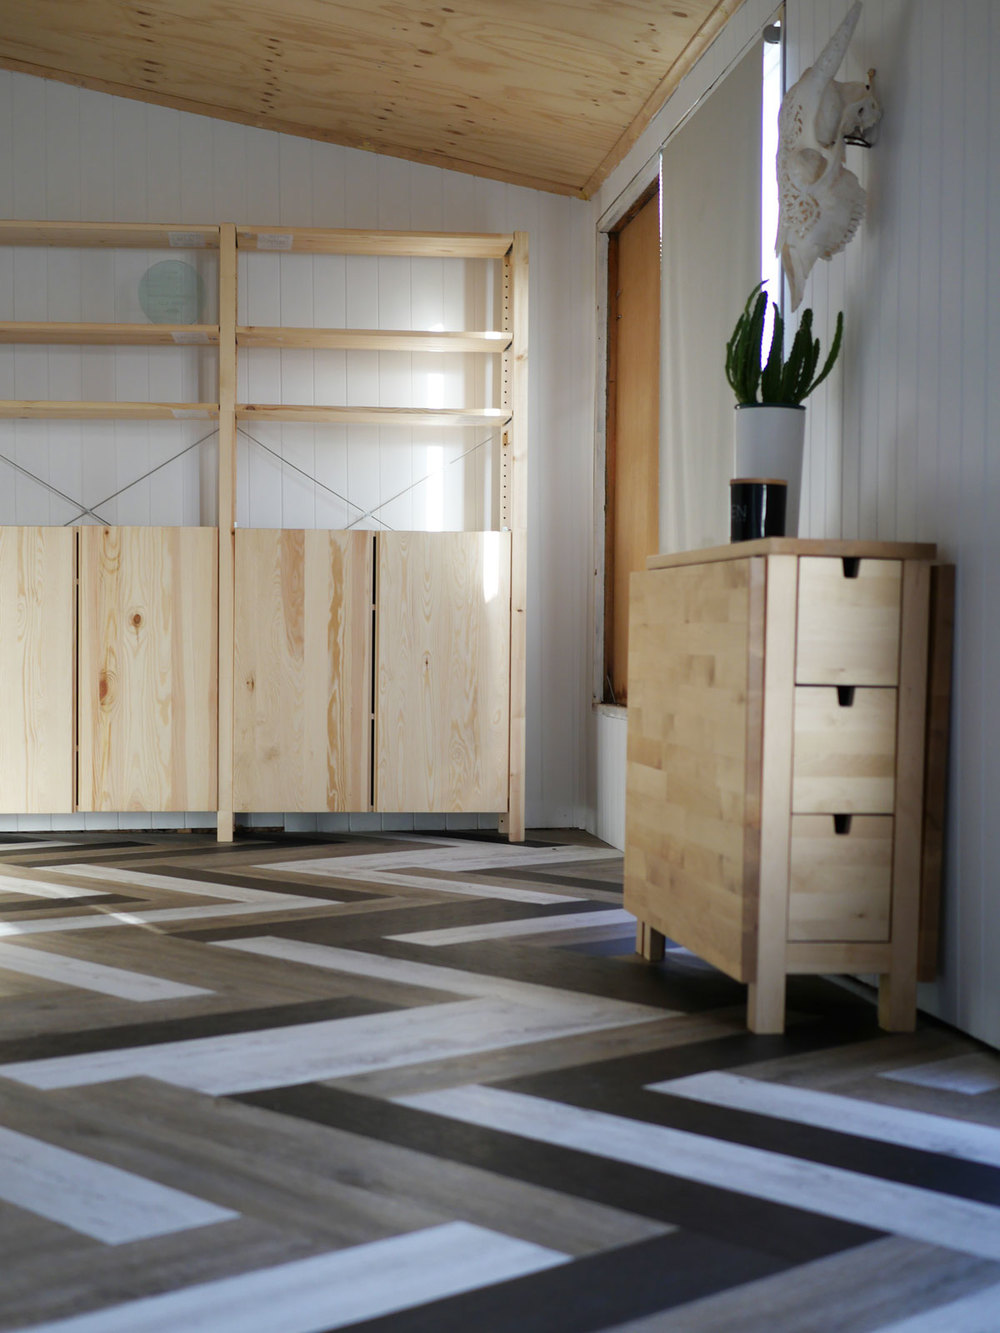 How to herringbone floor